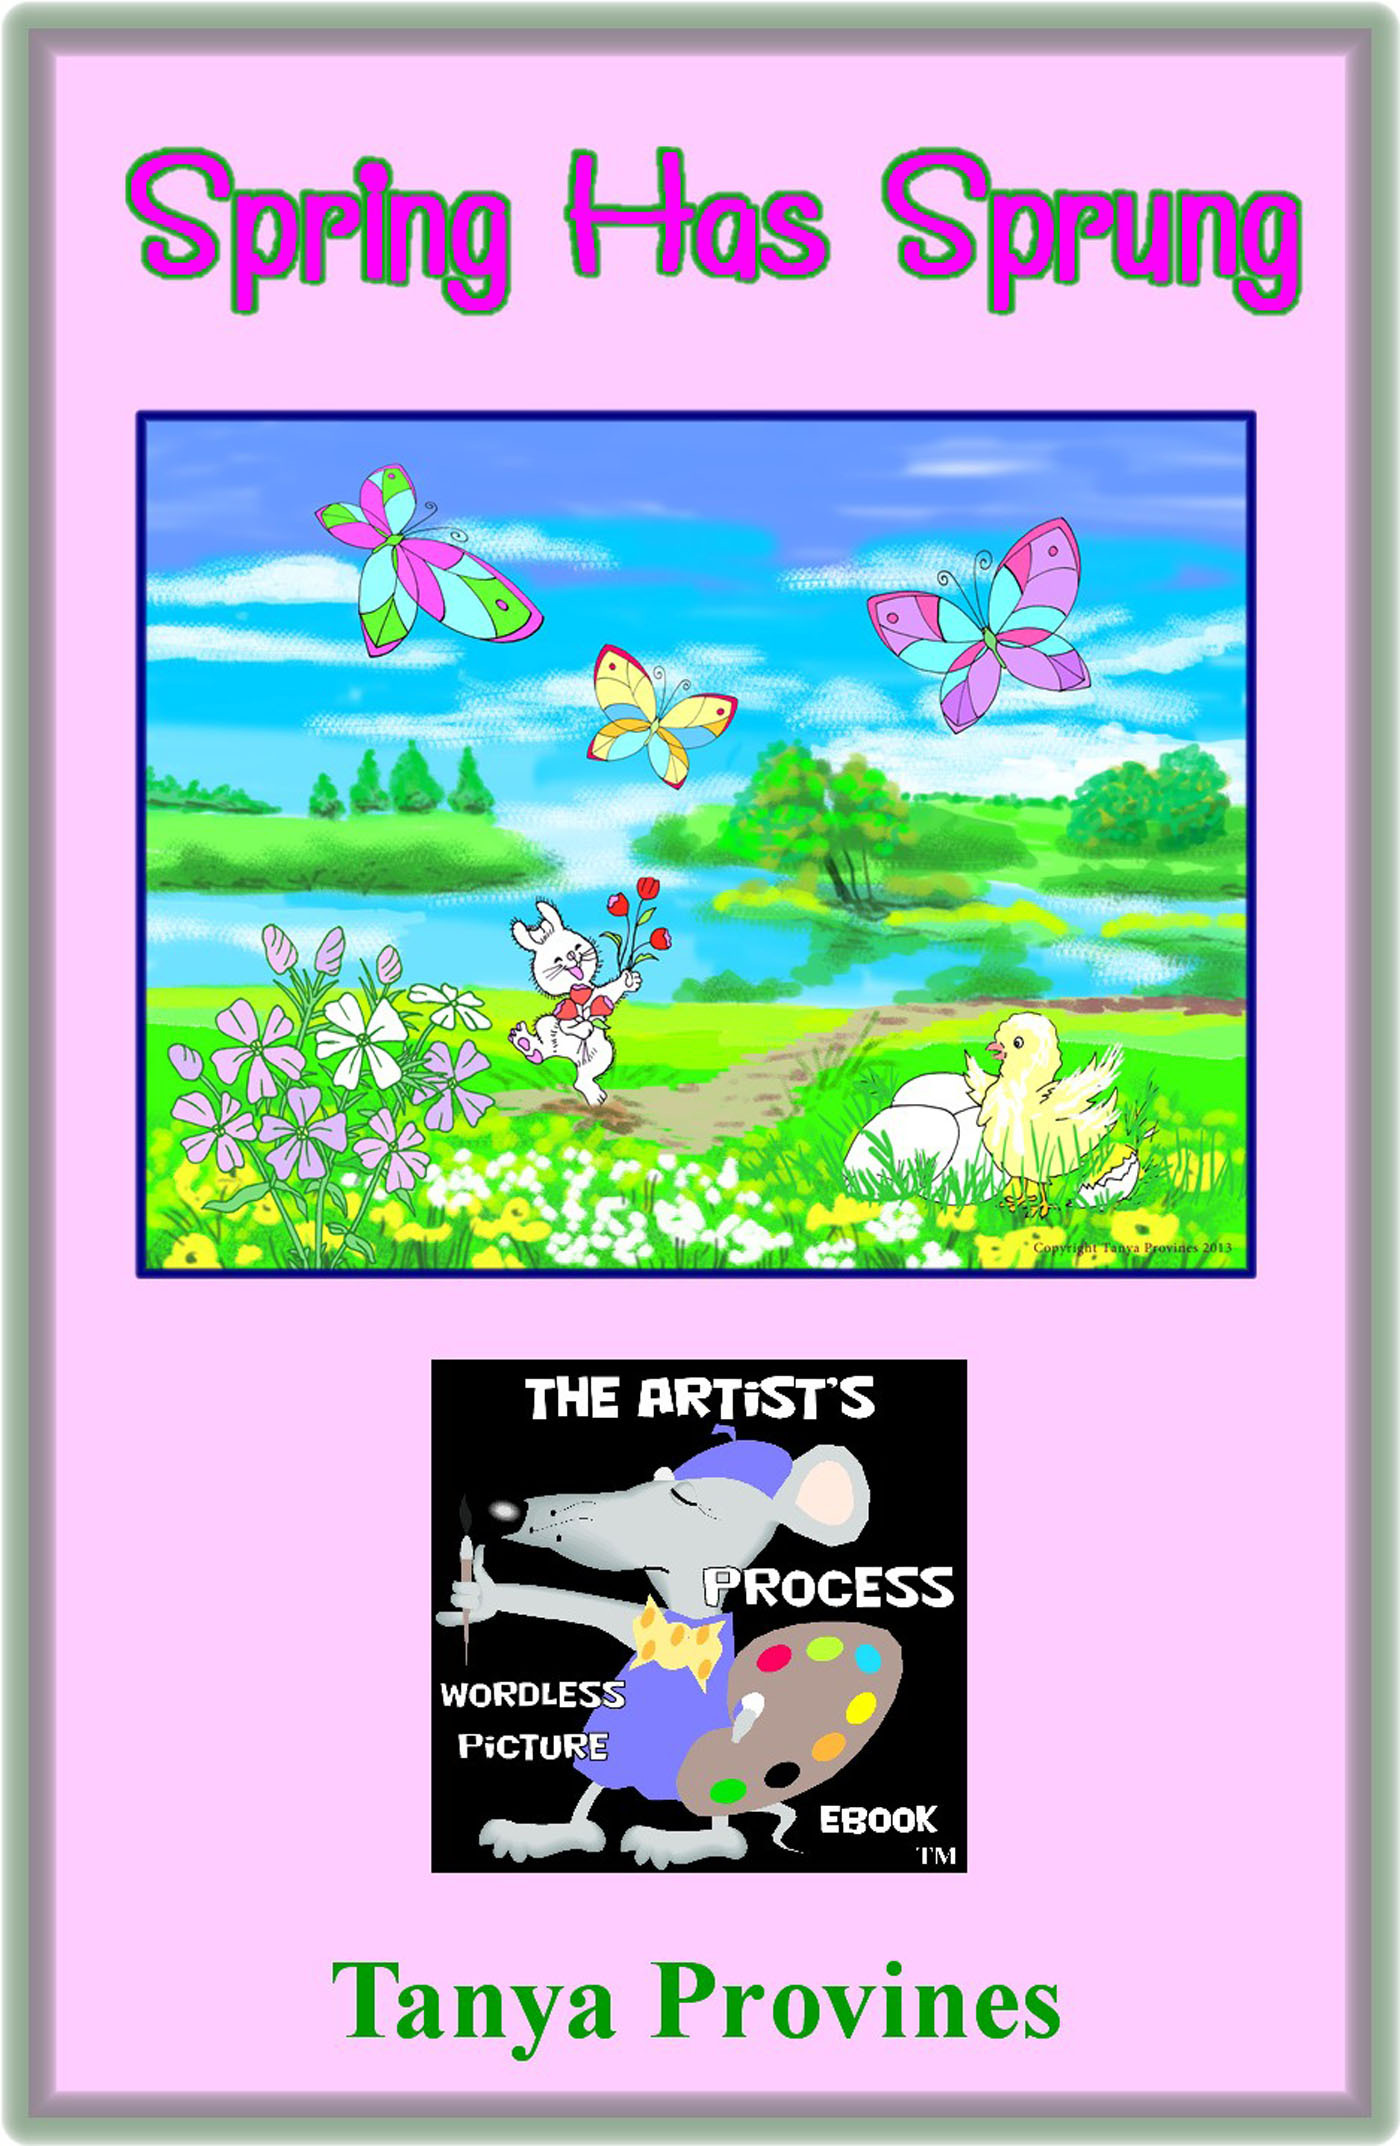 Spring Has Sprung The Artist's Process Wordless Picture eBook